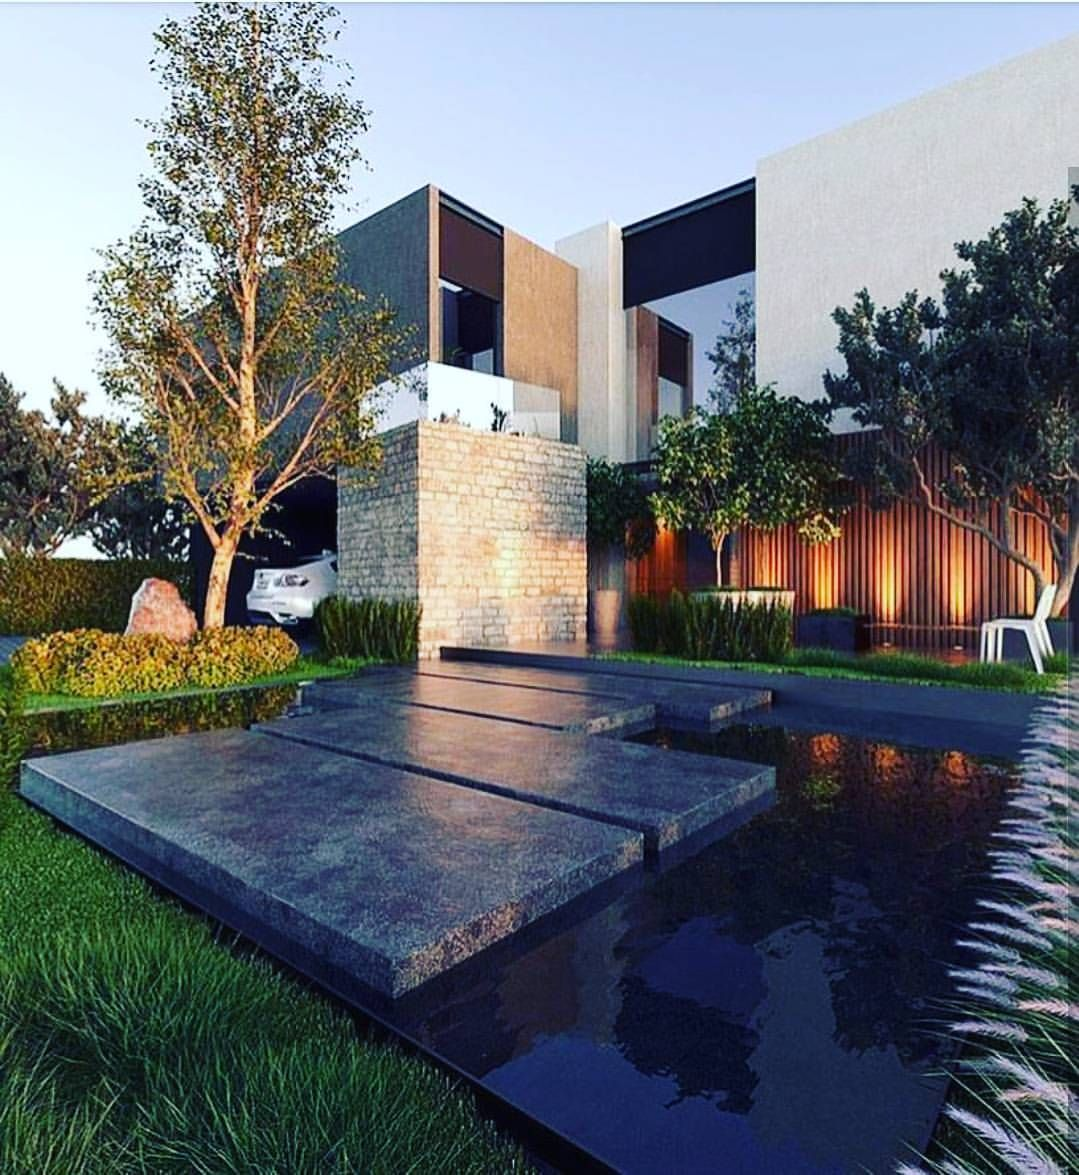 Modern Contemporaryhome Exterior Design: Pin By Jamara Haymore On HOUSES. Design & Architecture